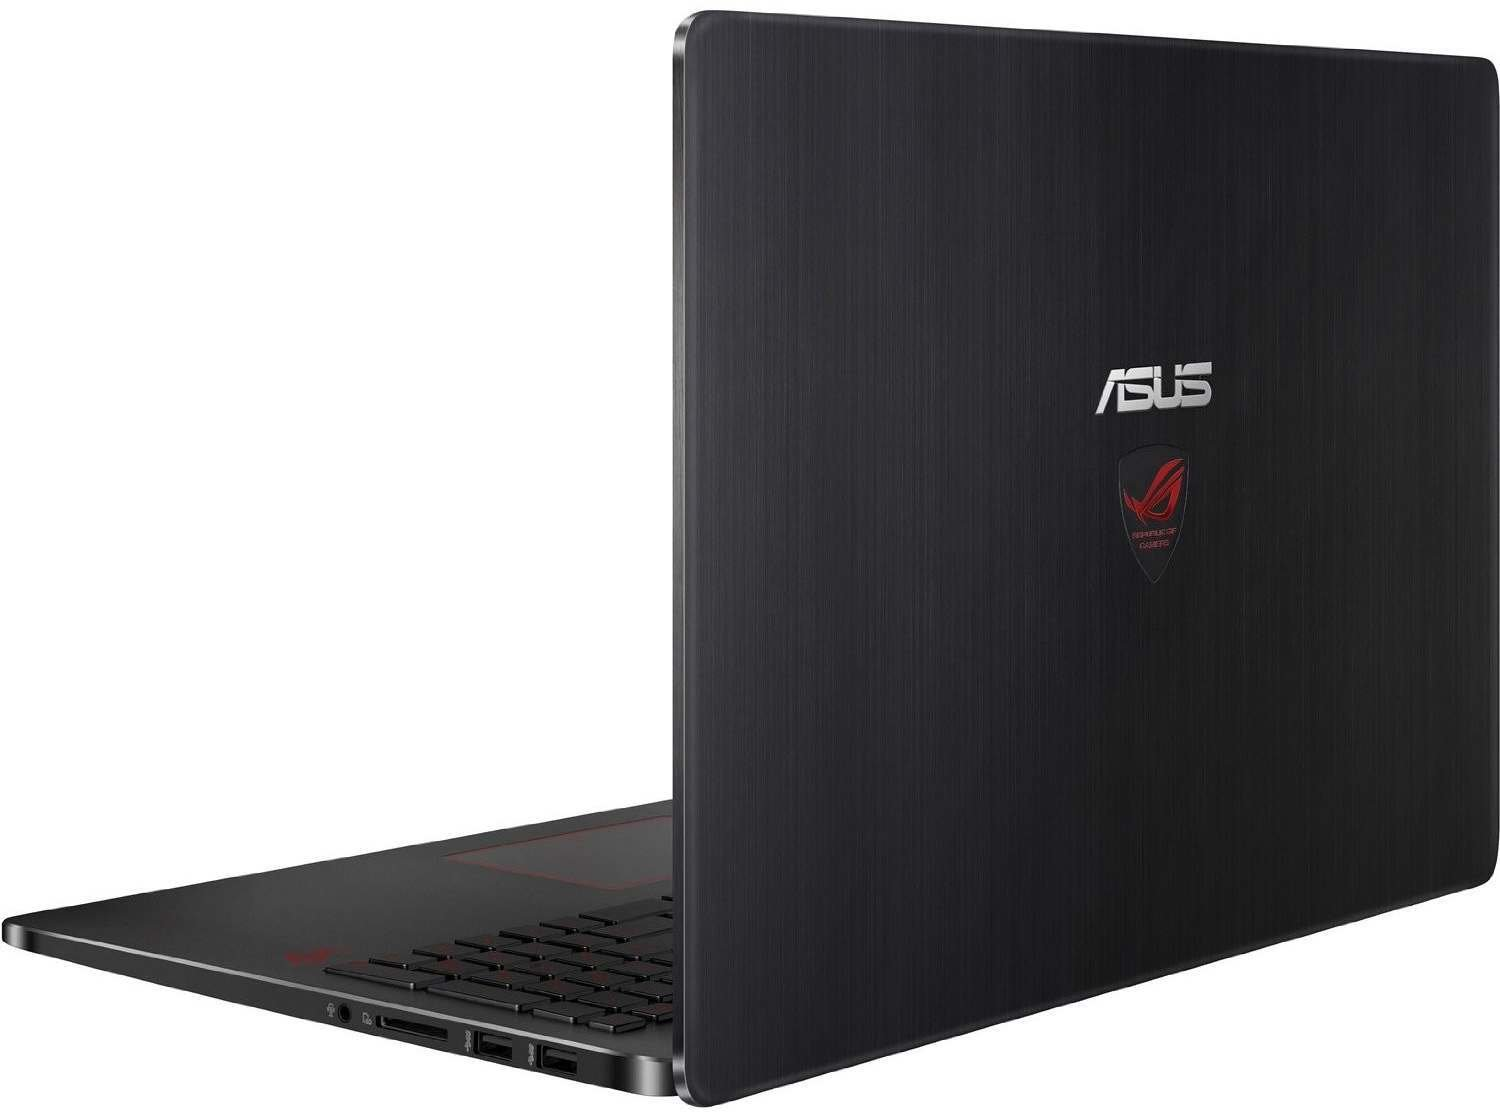 asus rog g501jw cn168h 90nb0873 m02600 5 tests infos. Black Bedroom Furniture Sets. Home Design Ideas